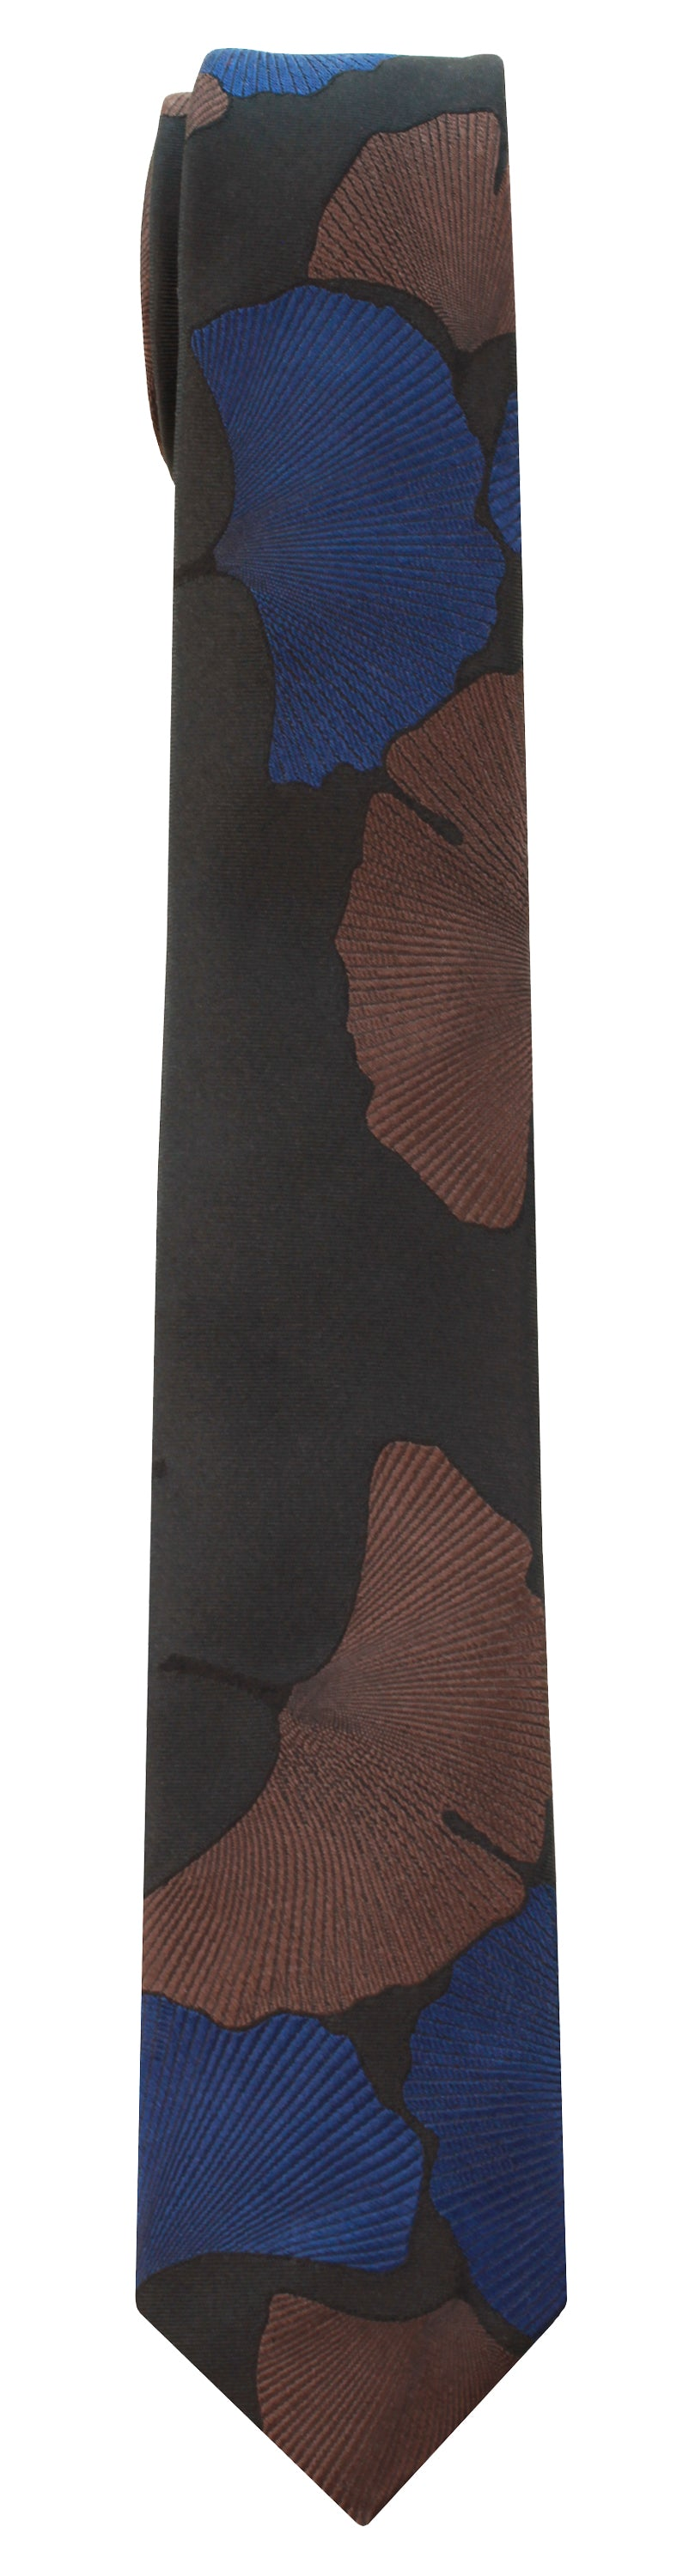 Mimi Fong Ginkgo Tie in Midnight